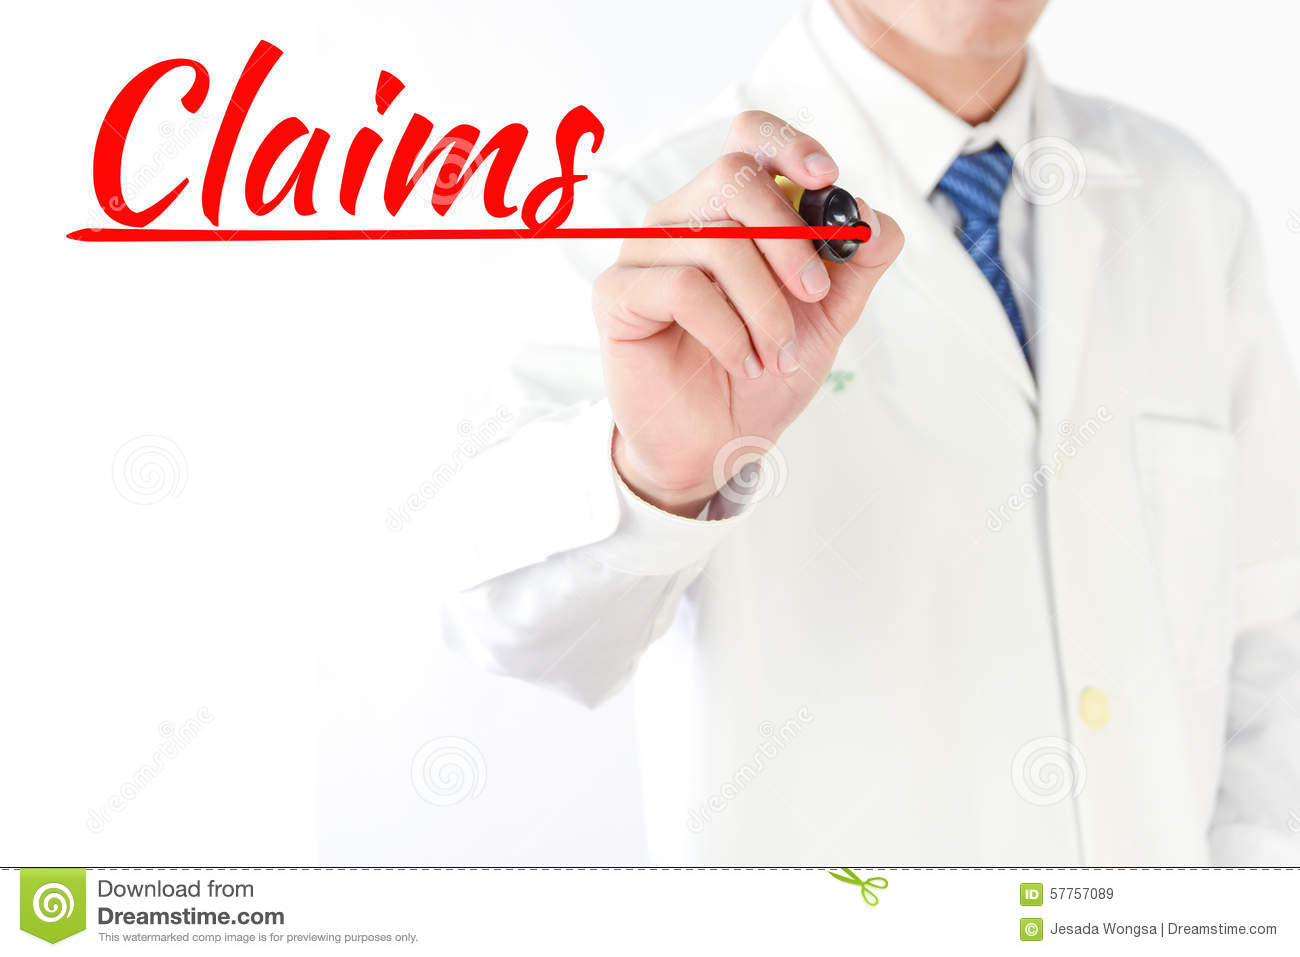 Writing claims